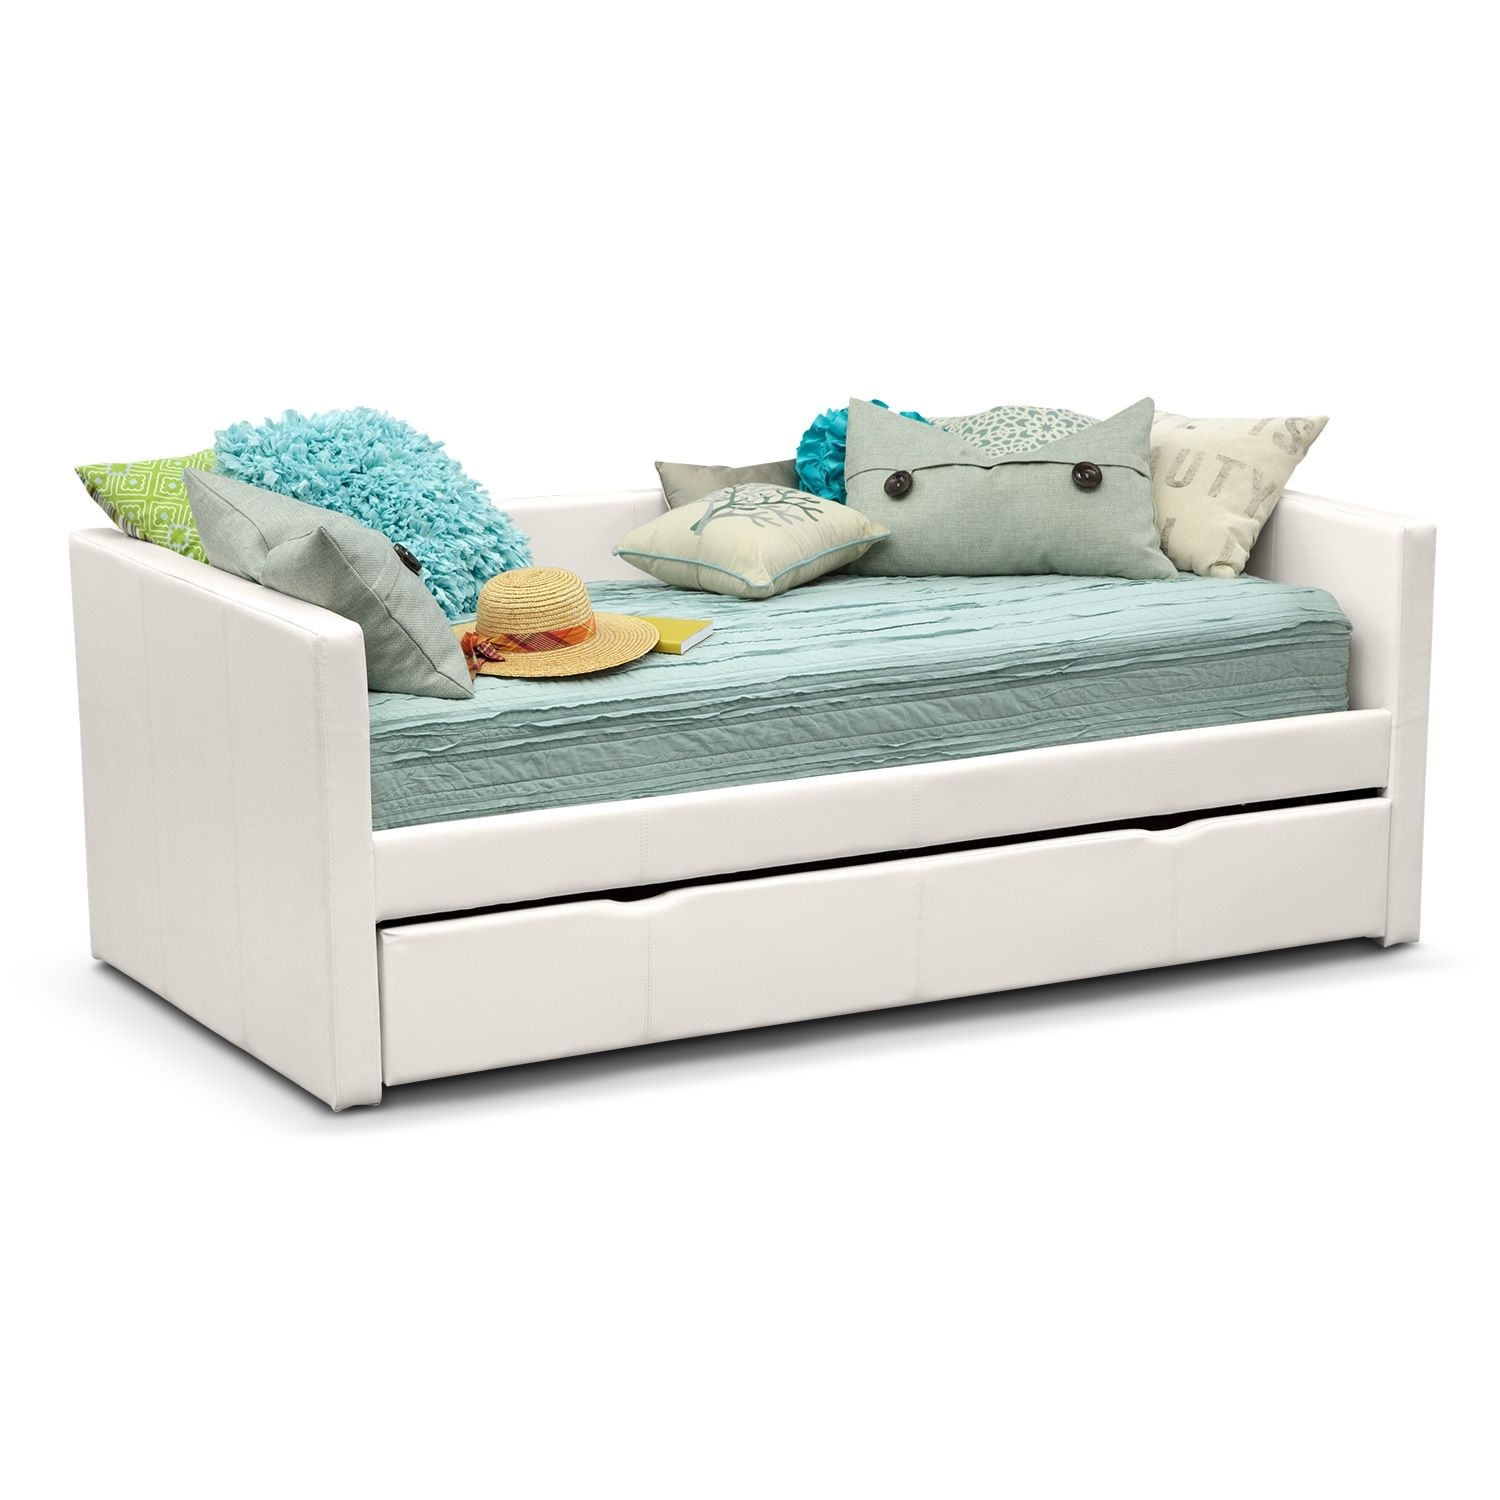 twin daybed mattress on saletwin daybed mattress on